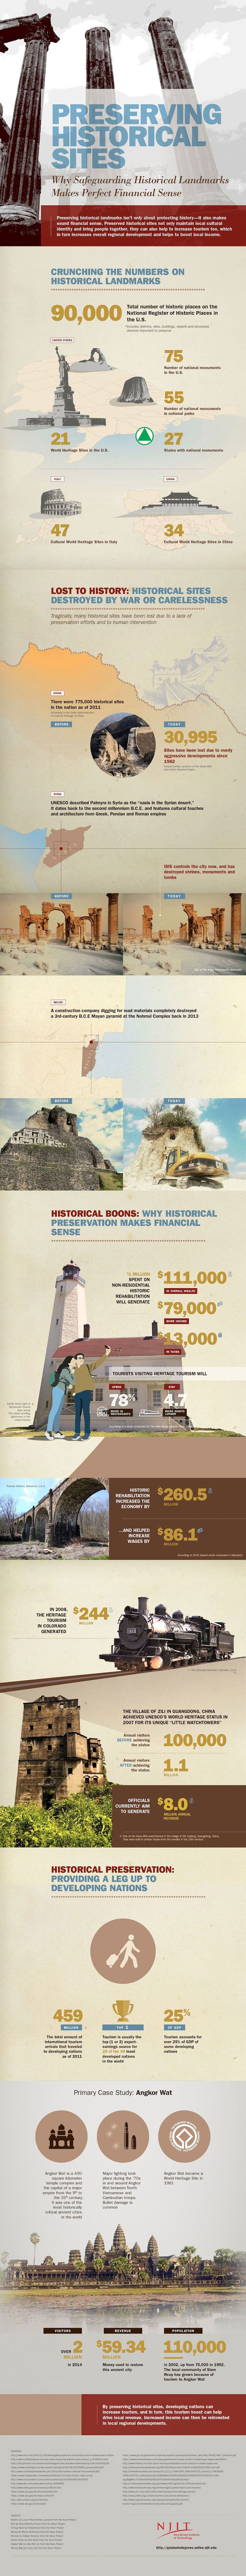 Infographic On The Need for Preserving Historical Sites